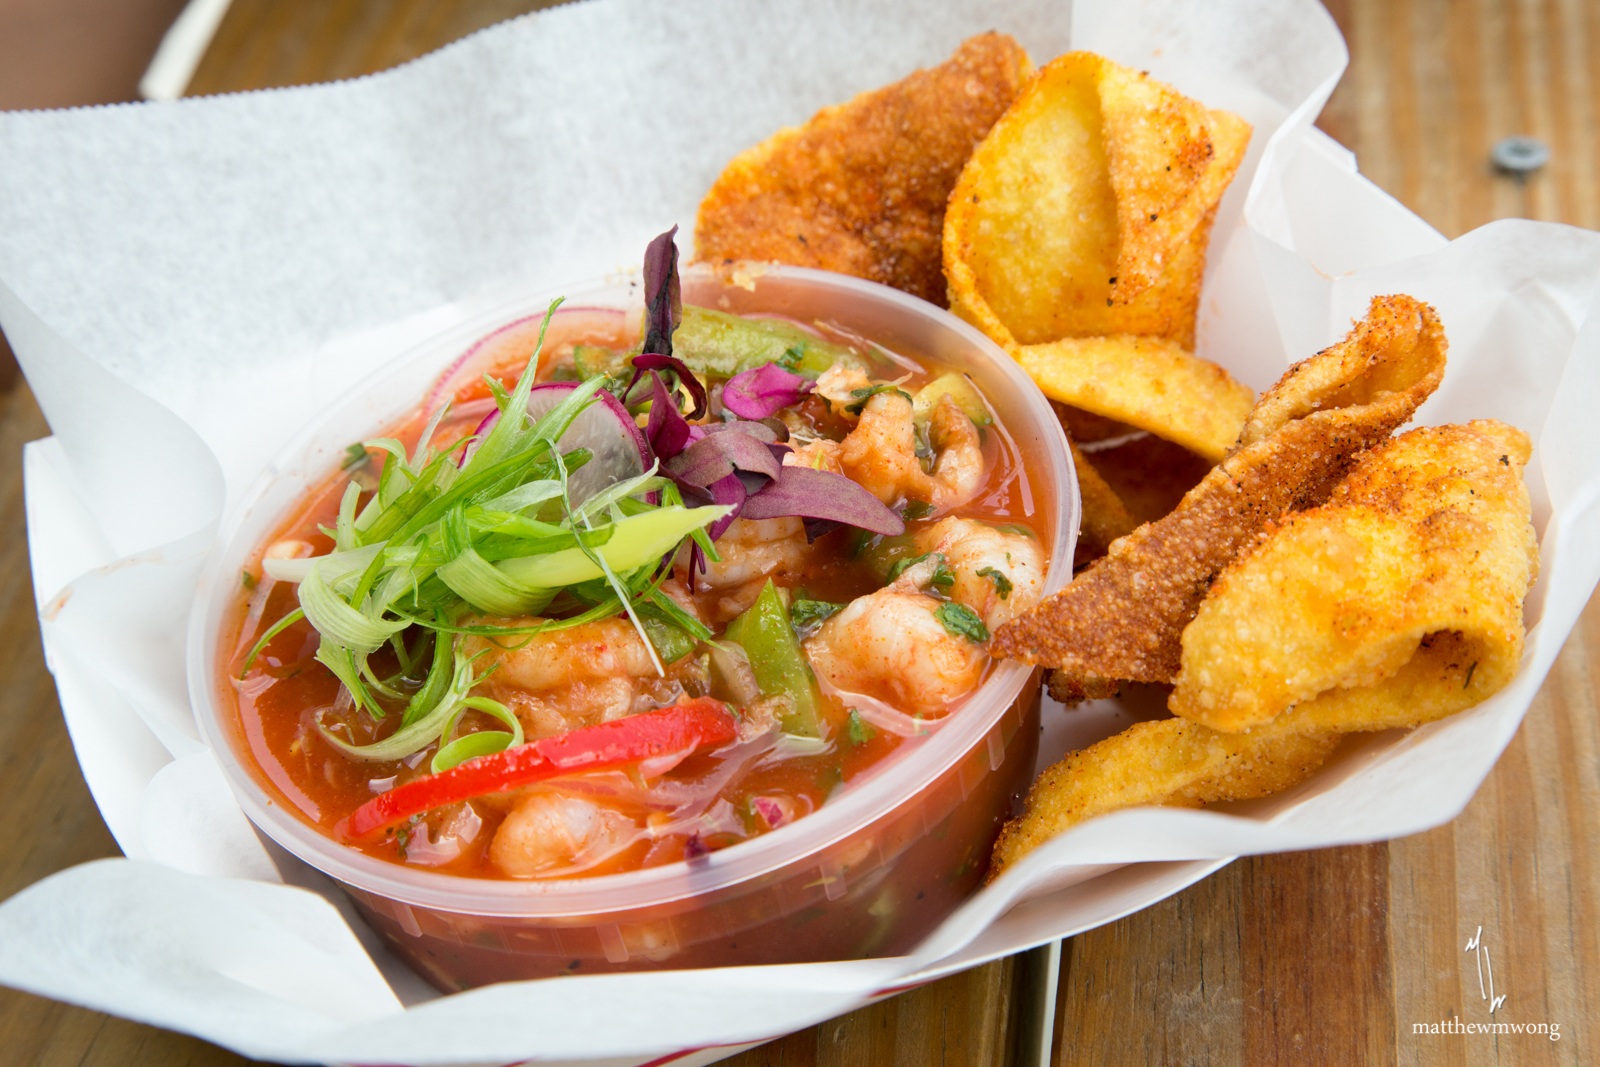 Cajun Rock Shrimp Ceviche, Rock Shrimp marinated in nectar of the gods, served cold with deep fried wonton chips